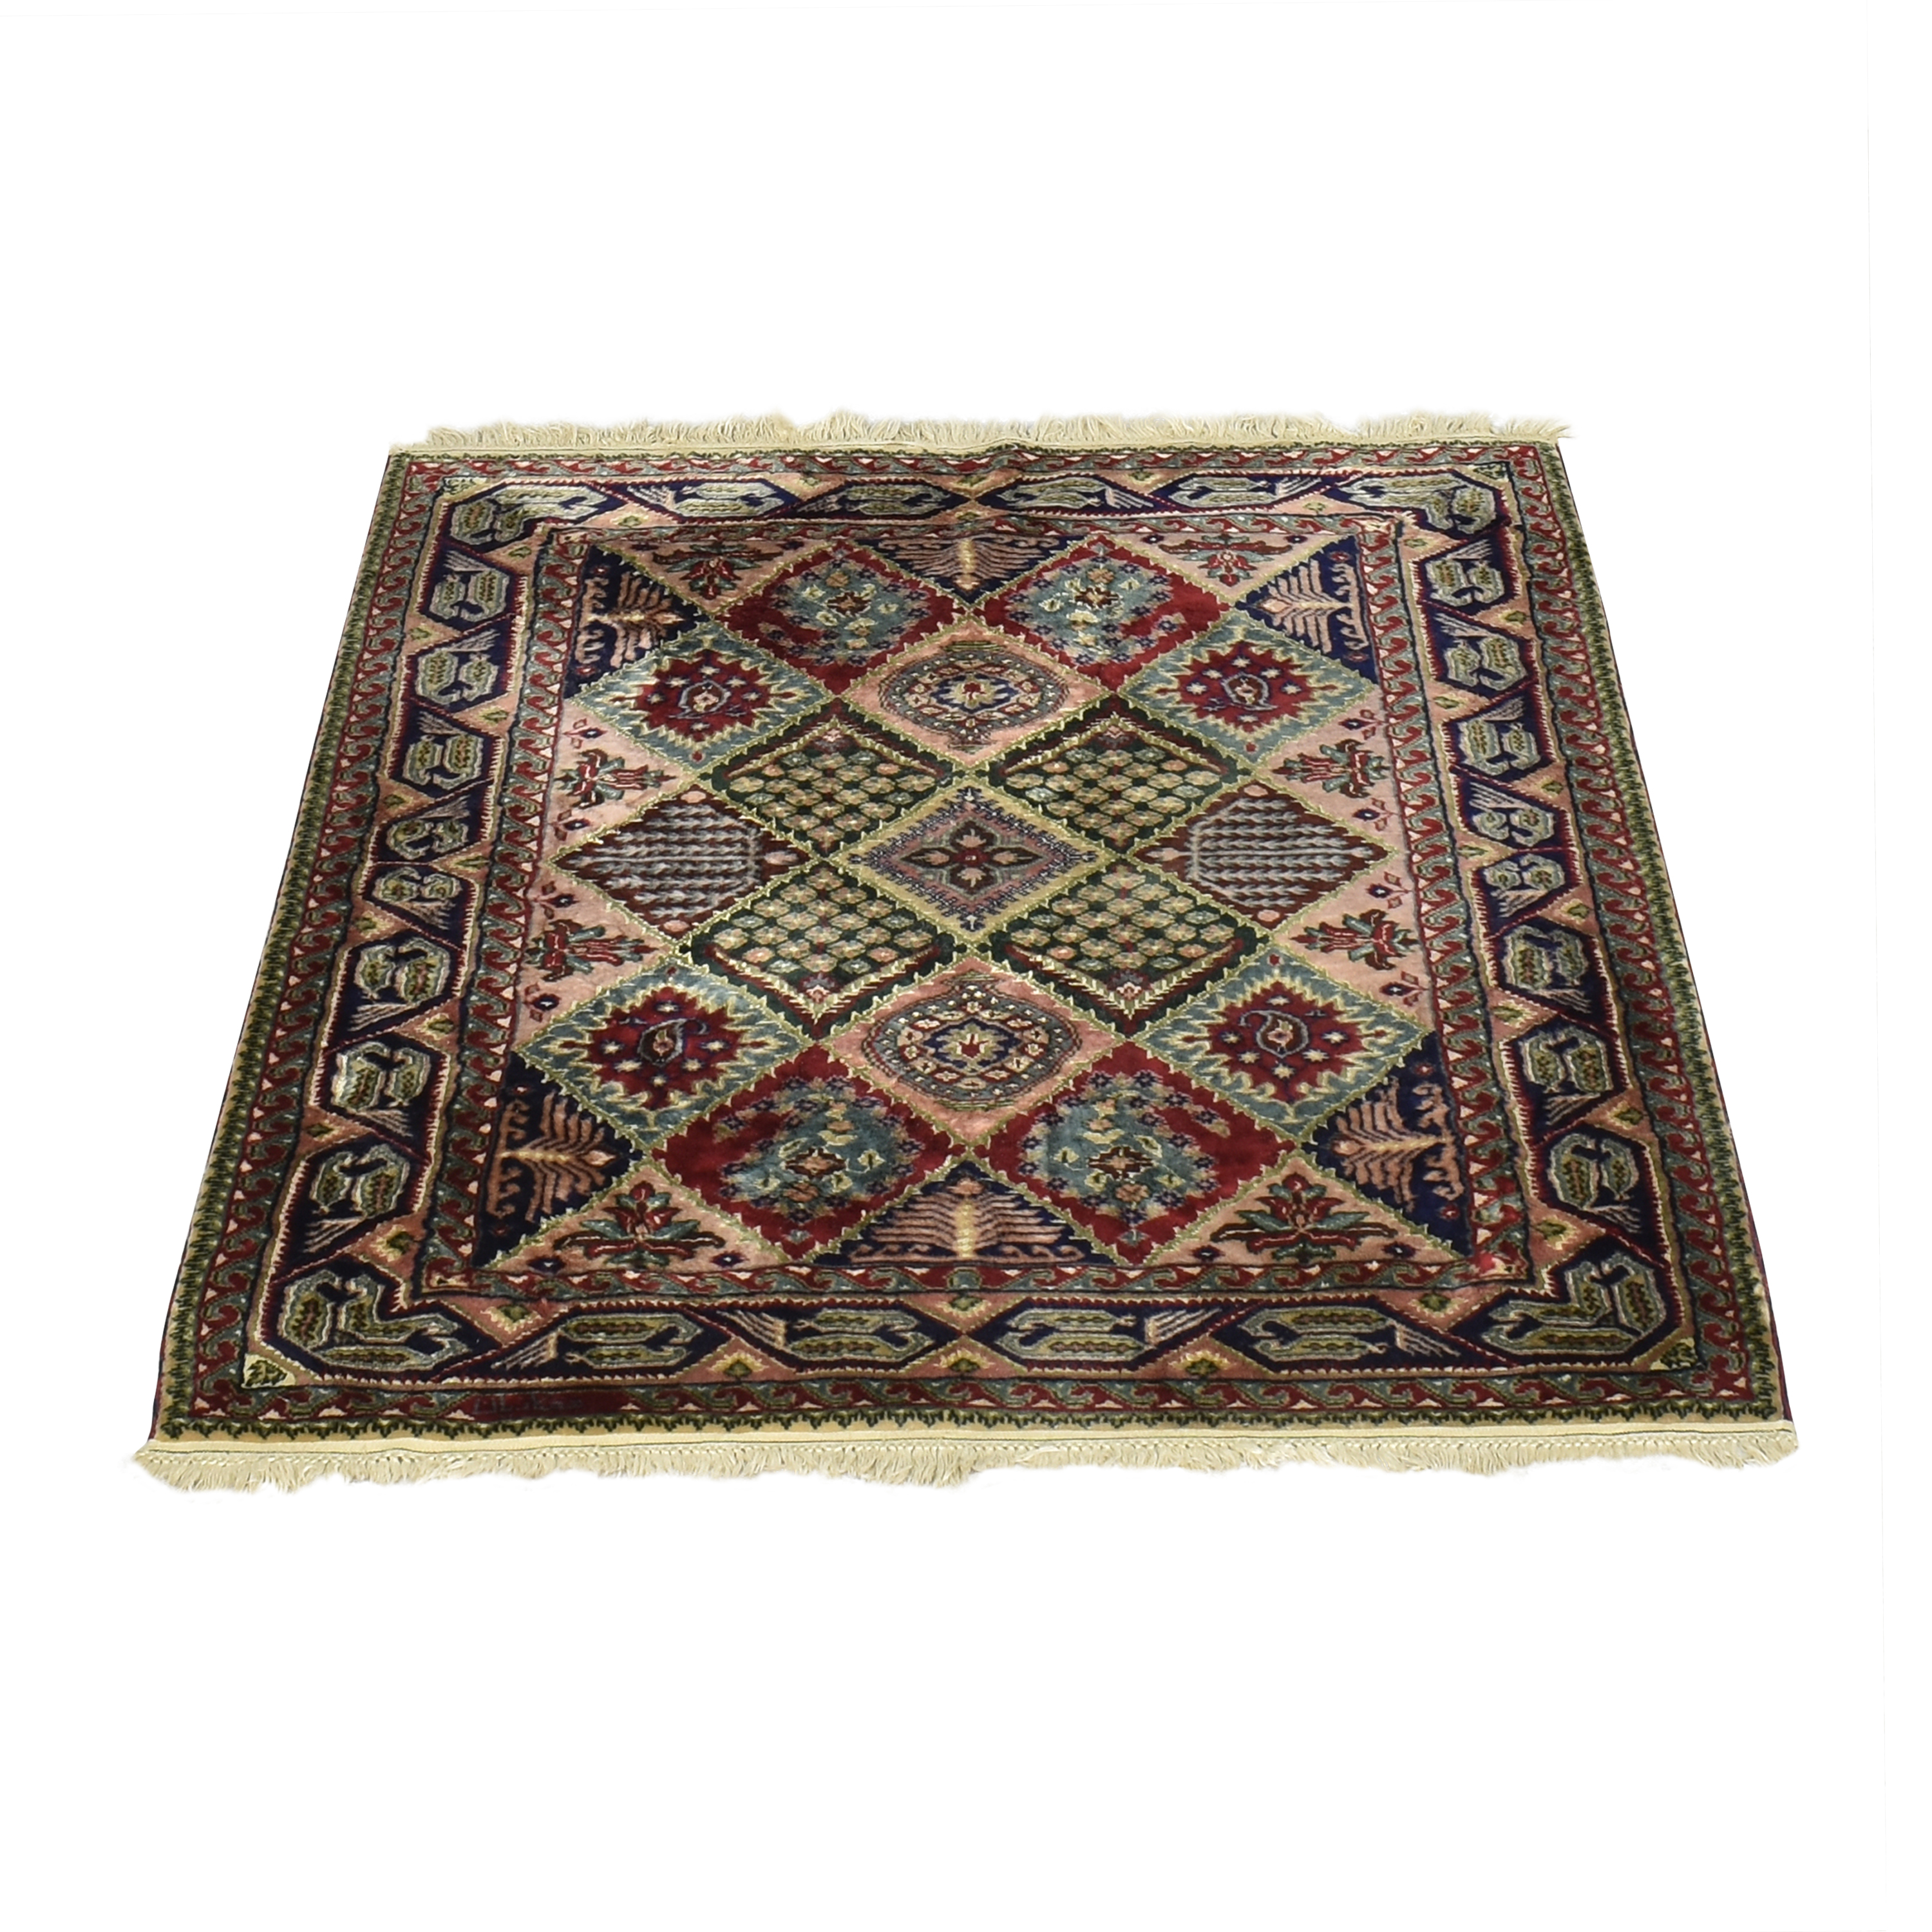 Patterned Area Rug multi colored